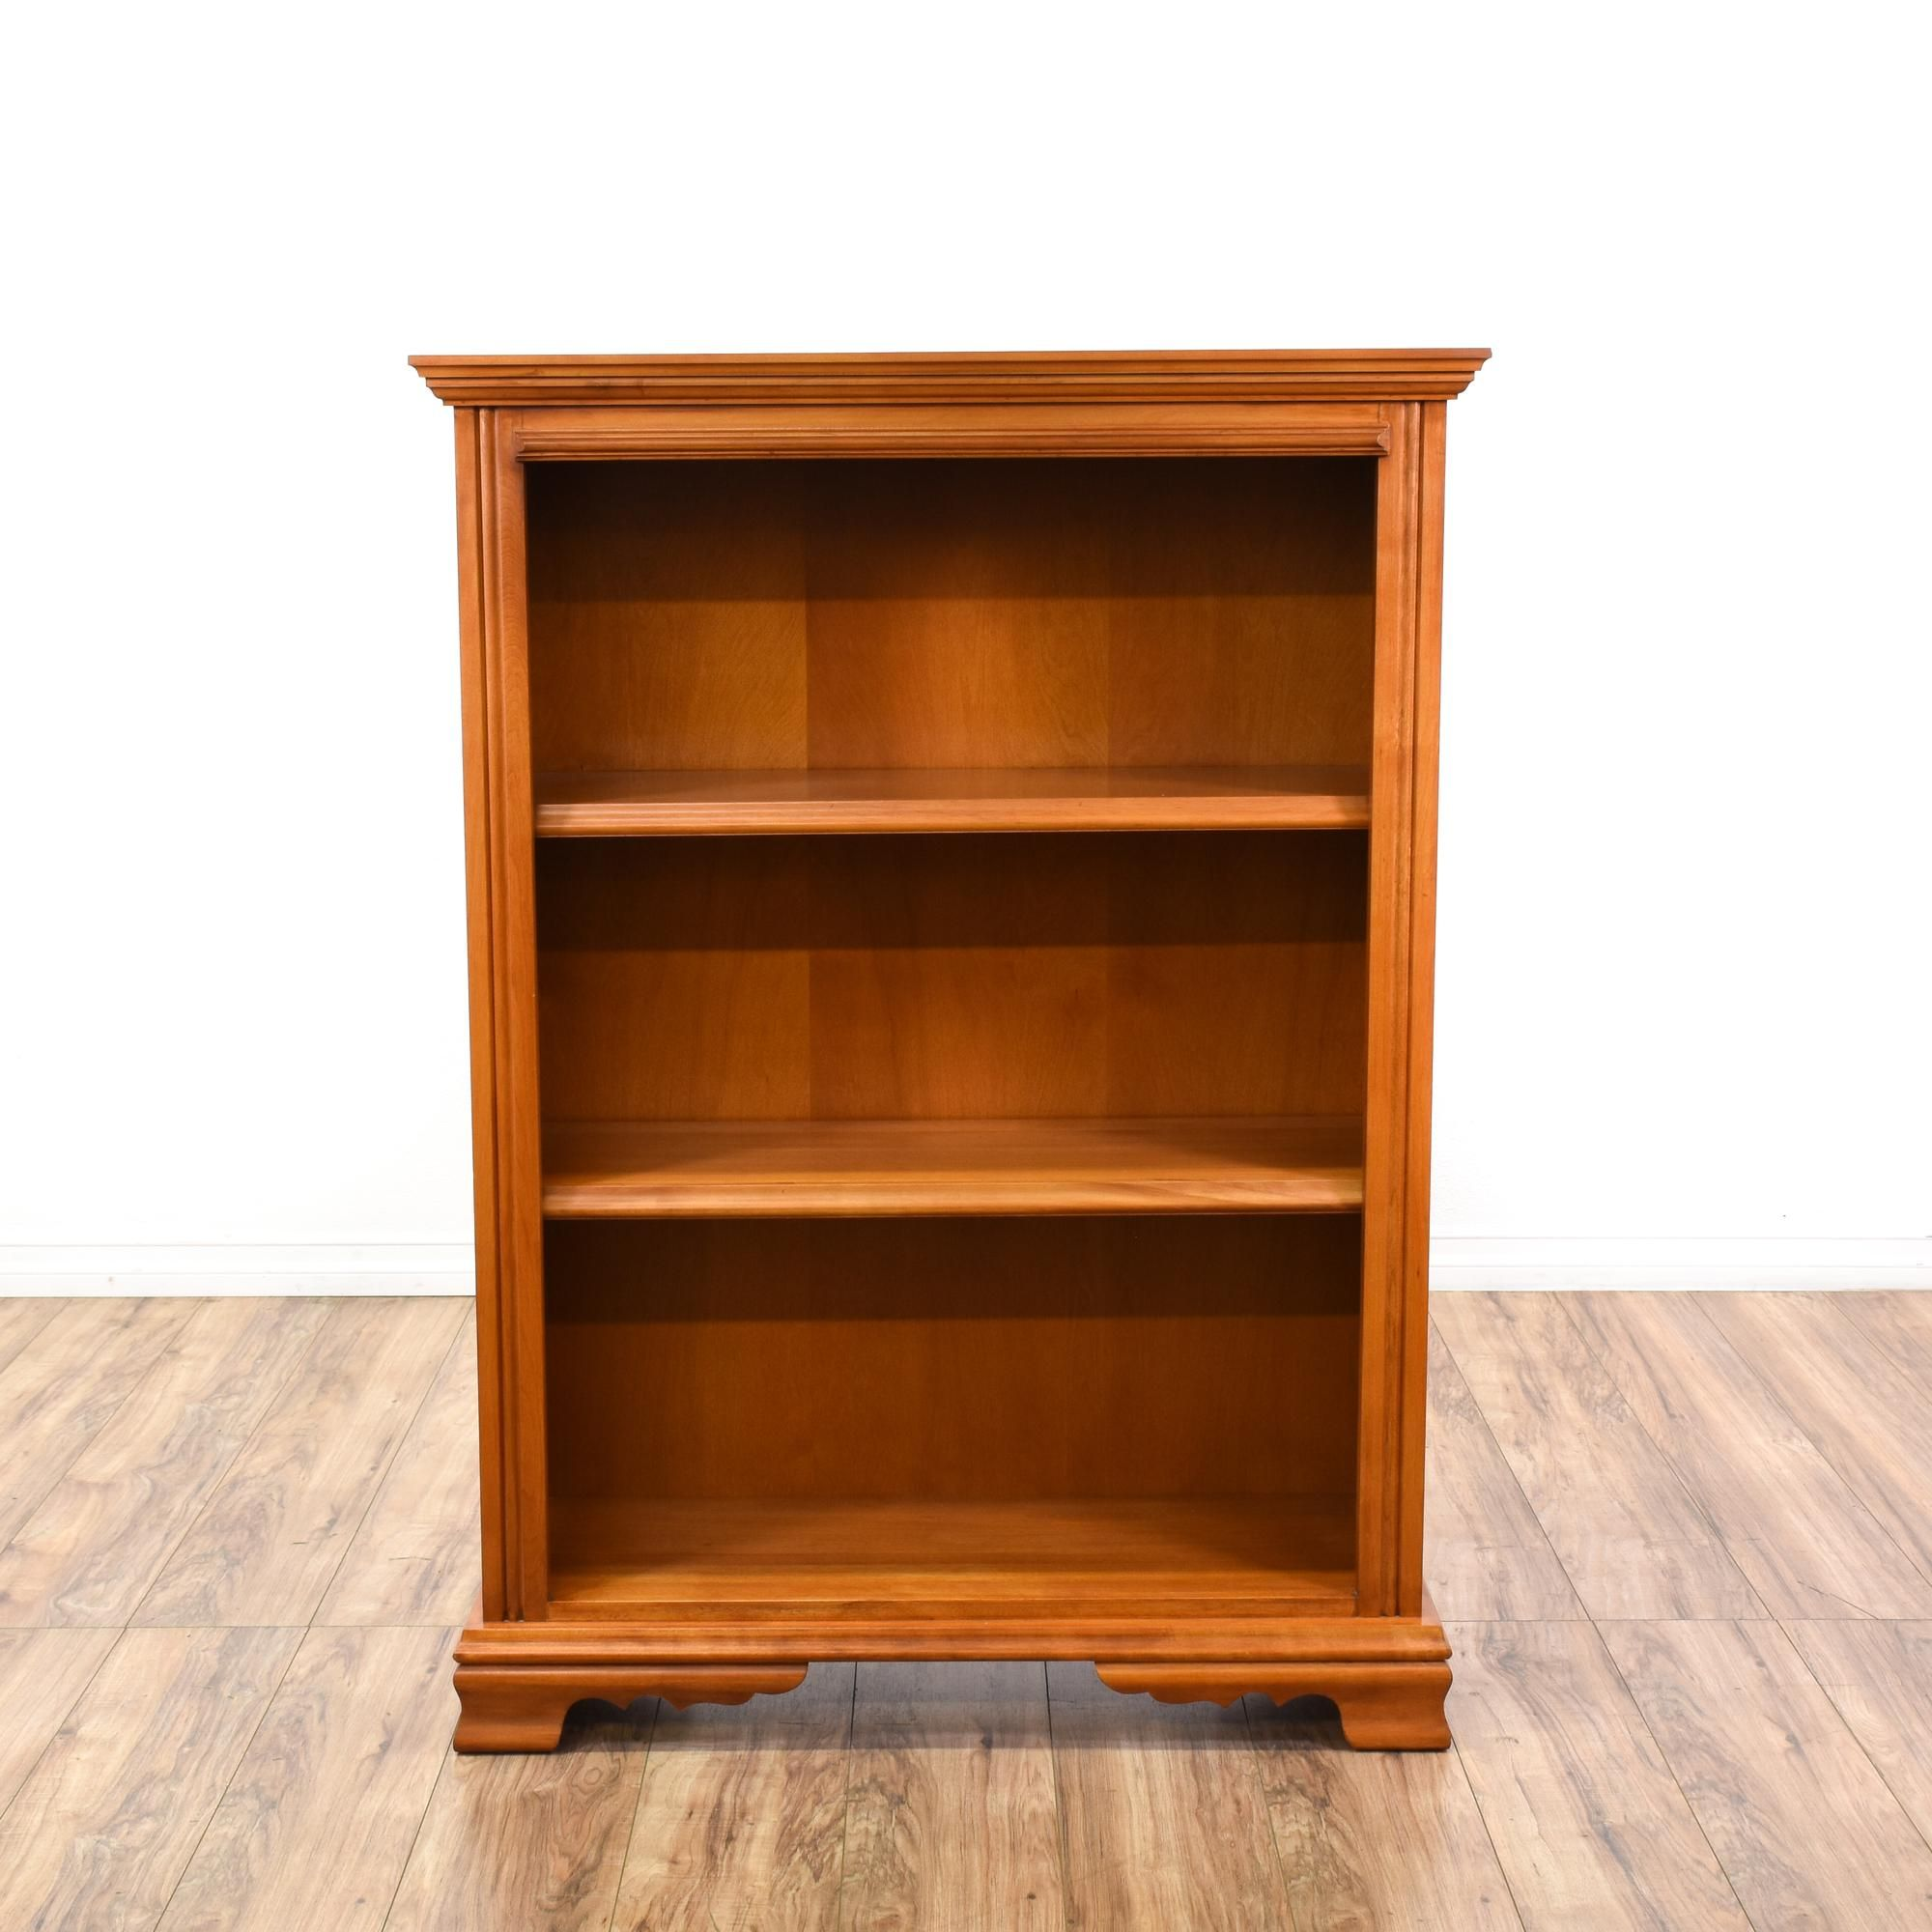 this harbor house bookcase is featured in a solid wood with a